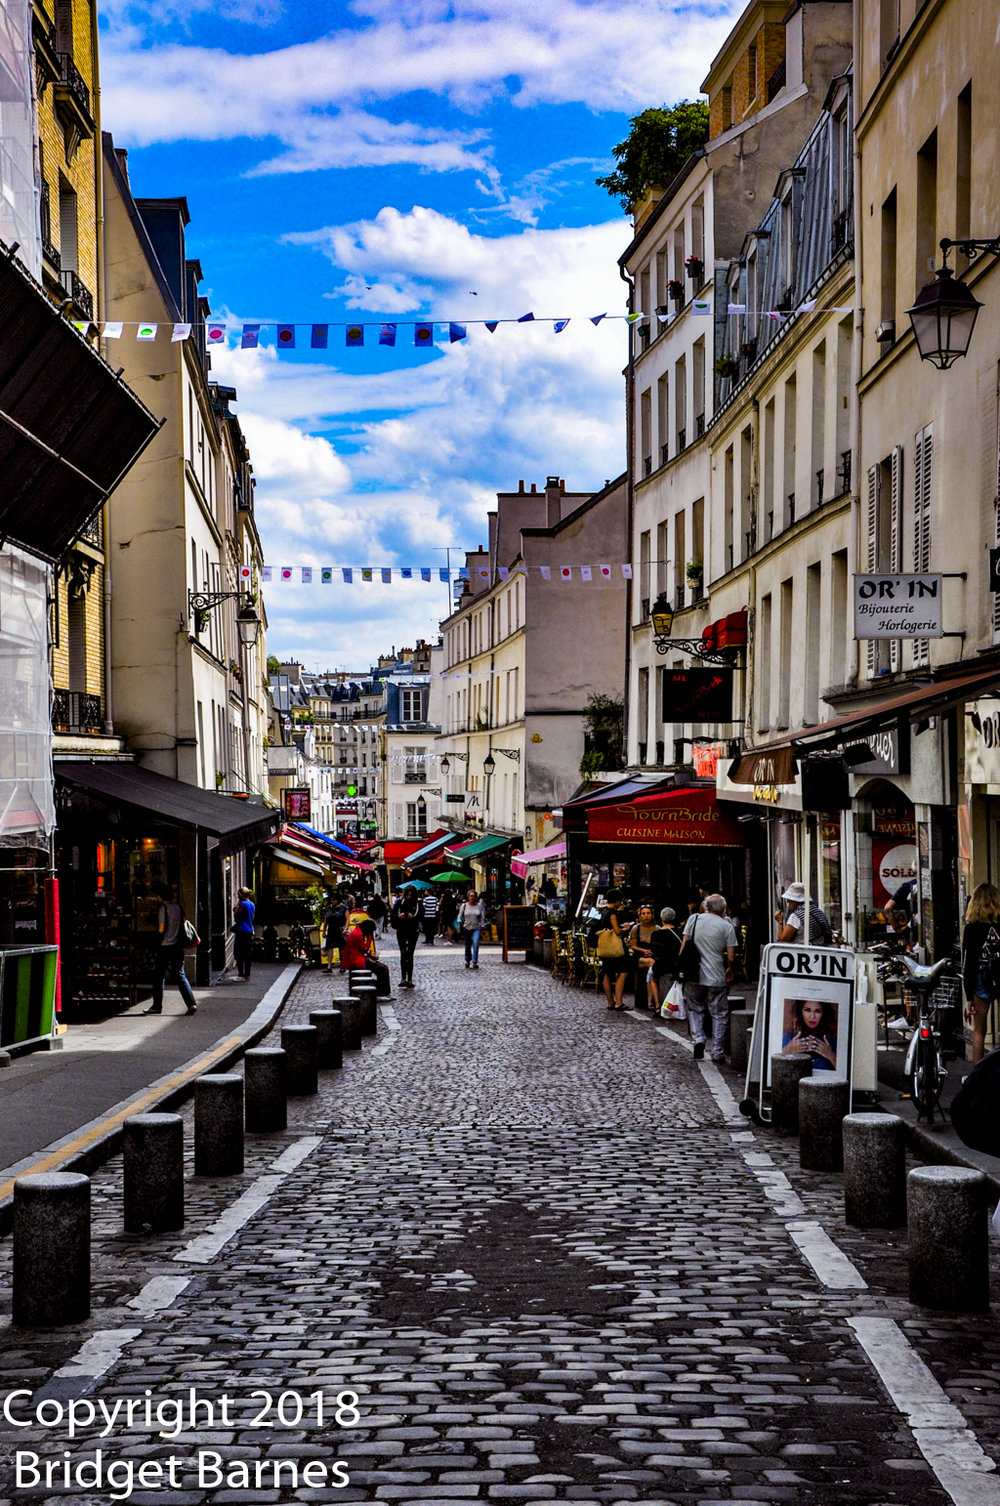 Pedestrian-only Rue Mouffetard offers travelers a stress-free opportunity to capture images of market displays and shop windows.